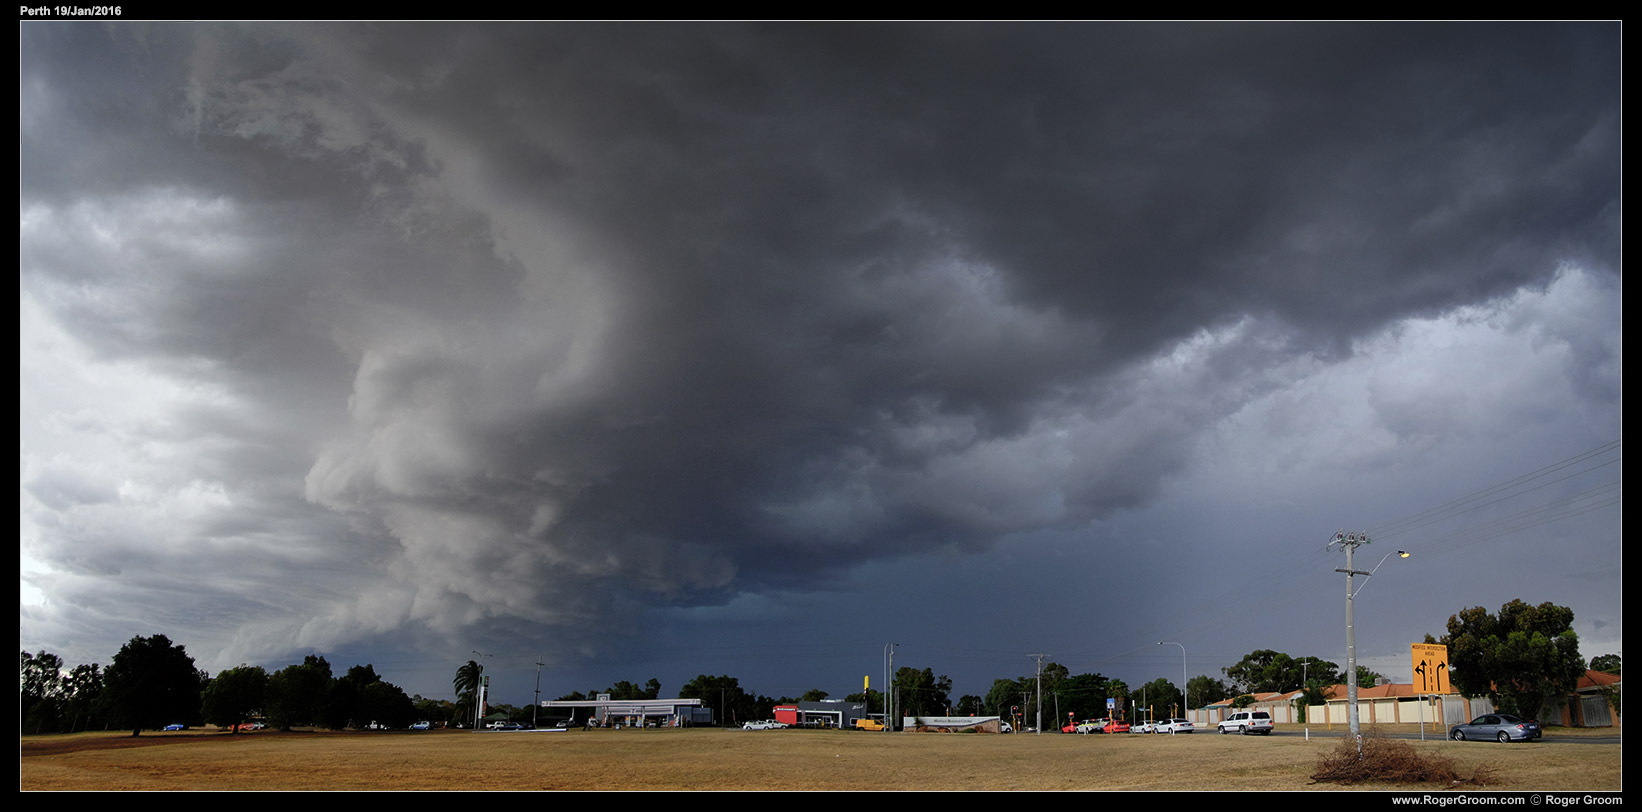 19th January 2016 Perth storm clouds.